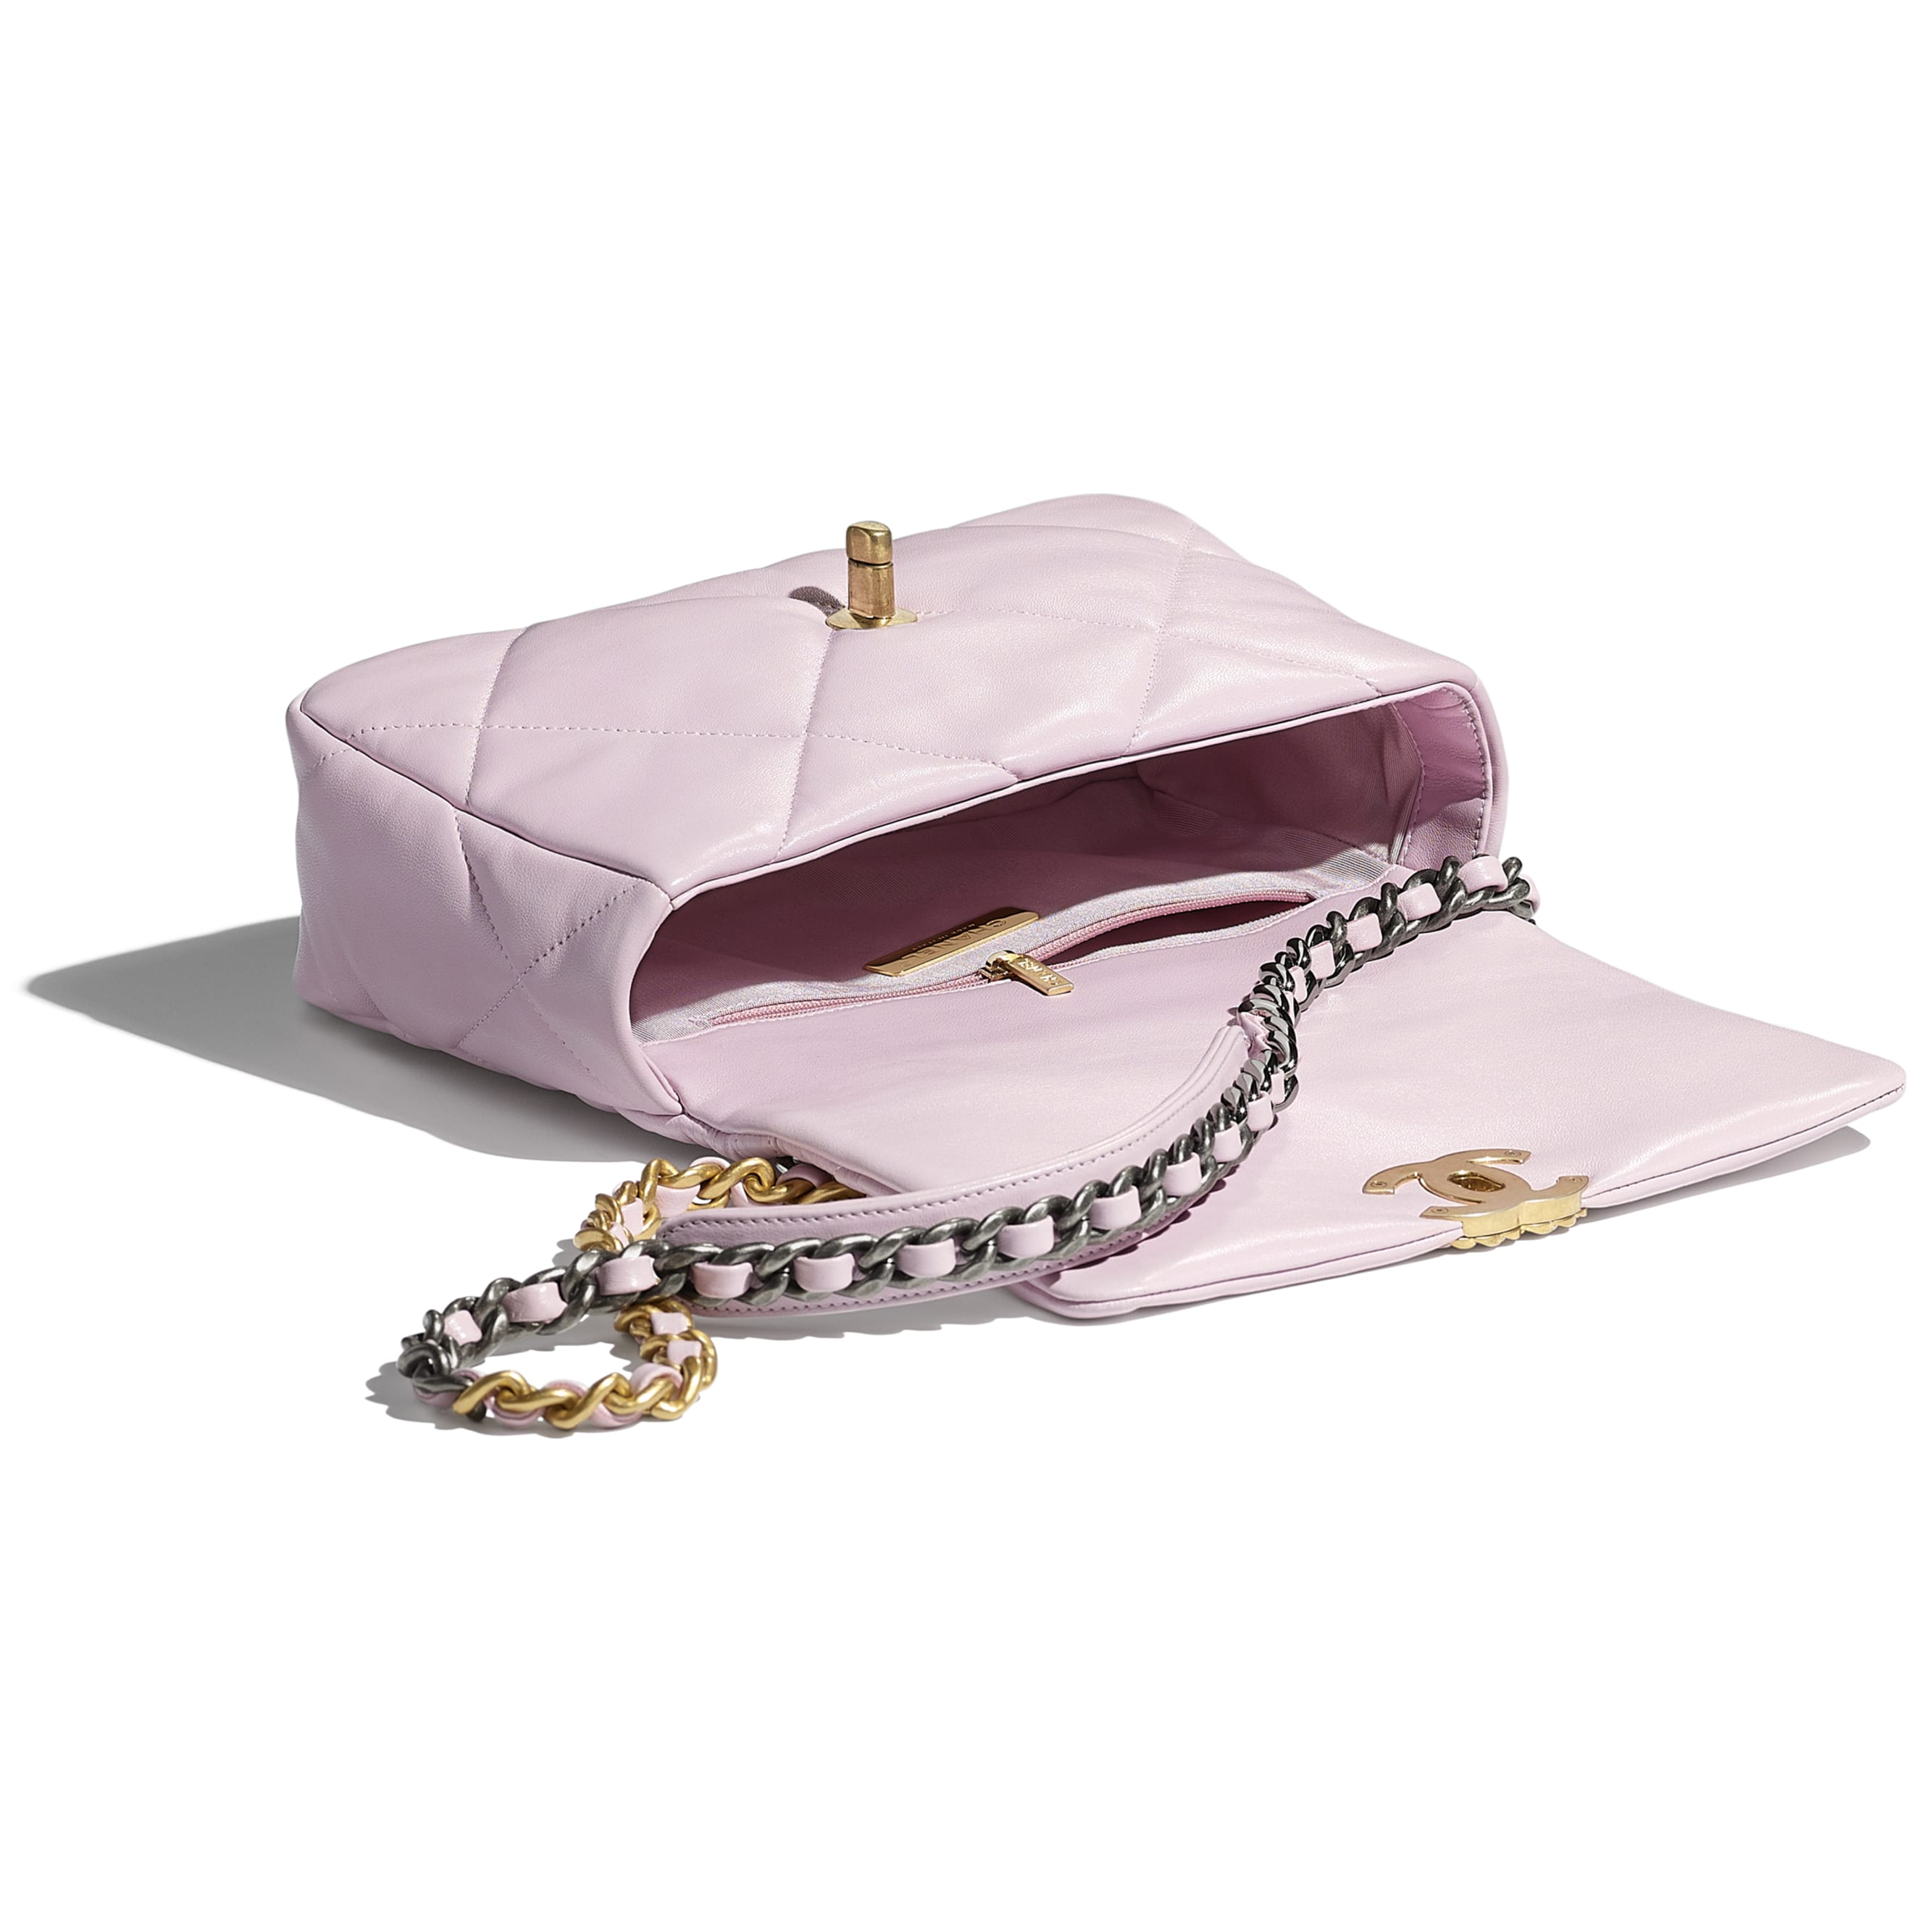 CHANEL 19 Handbag - Light Pink - Lambskin, Gold-Tone, Silver-Tone & Ruthenium-Finish Metal - CHANEL - Other view - see standard sized version